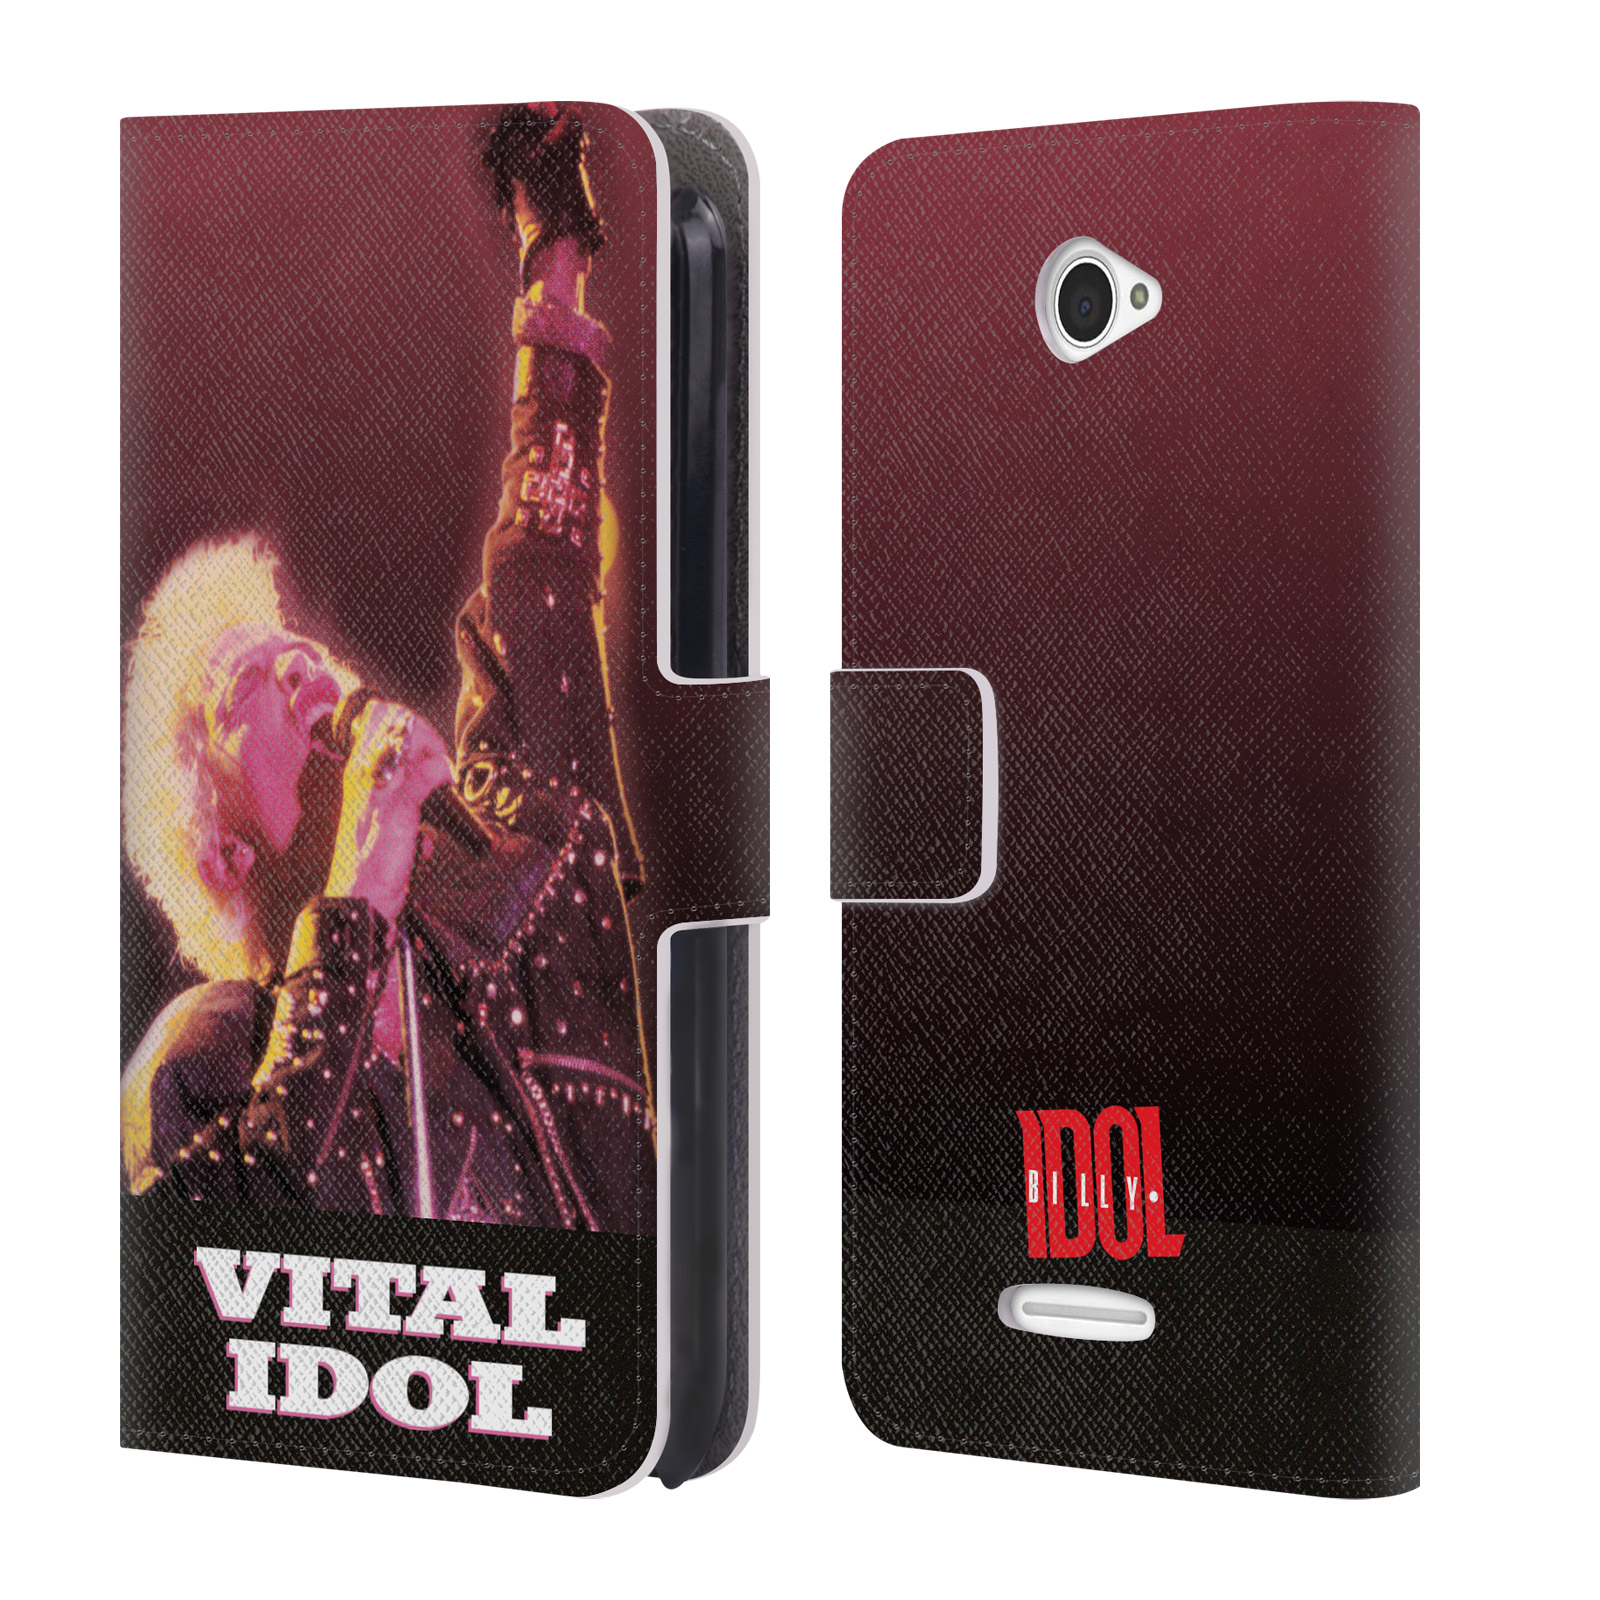 OFFICIAL-BILLY-IDOL-ALBUMS-LEATHER-BOOK-WALLET-CASE-COVER-FOR-SONY-PHONES-2